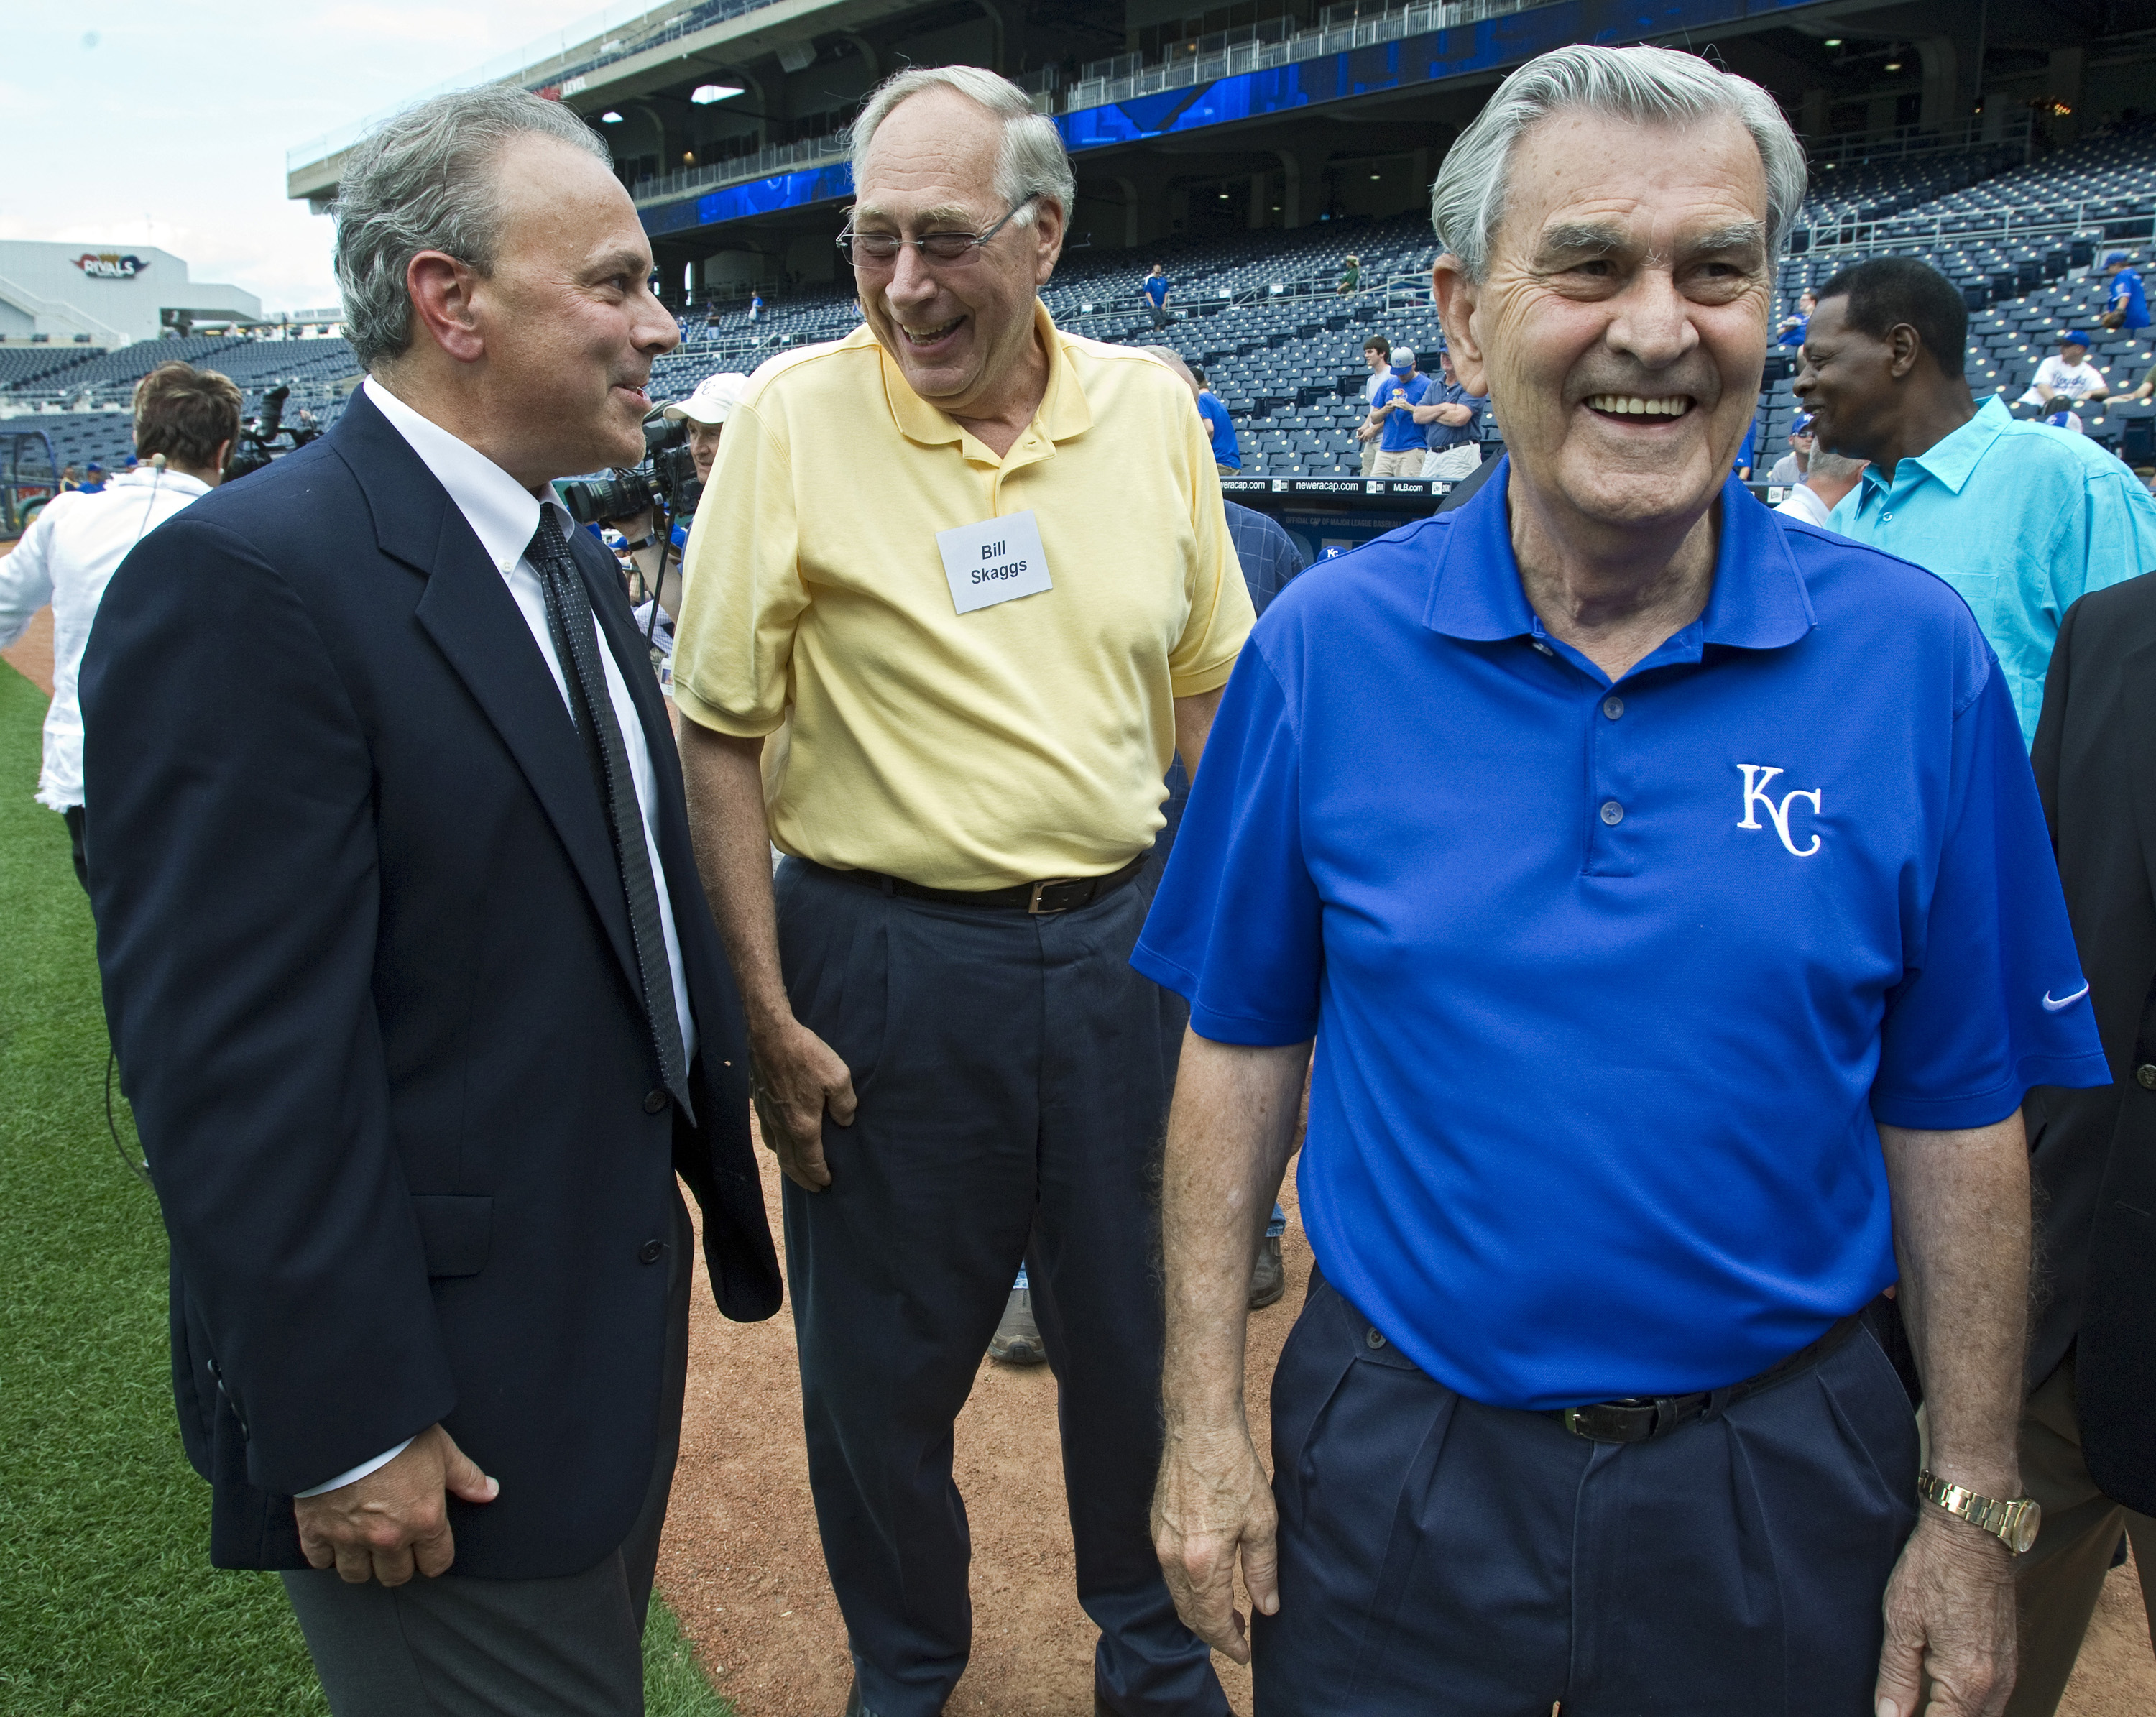 Kansas City Royals owner and CEO David Glass, right, with his son and team president Dan Glass, left, as they visit with Kansas City councilman Bill Skaggs during announcement of the 2012 Major League All-Star Game coming to Kauffman Stadium in Kansas Cit